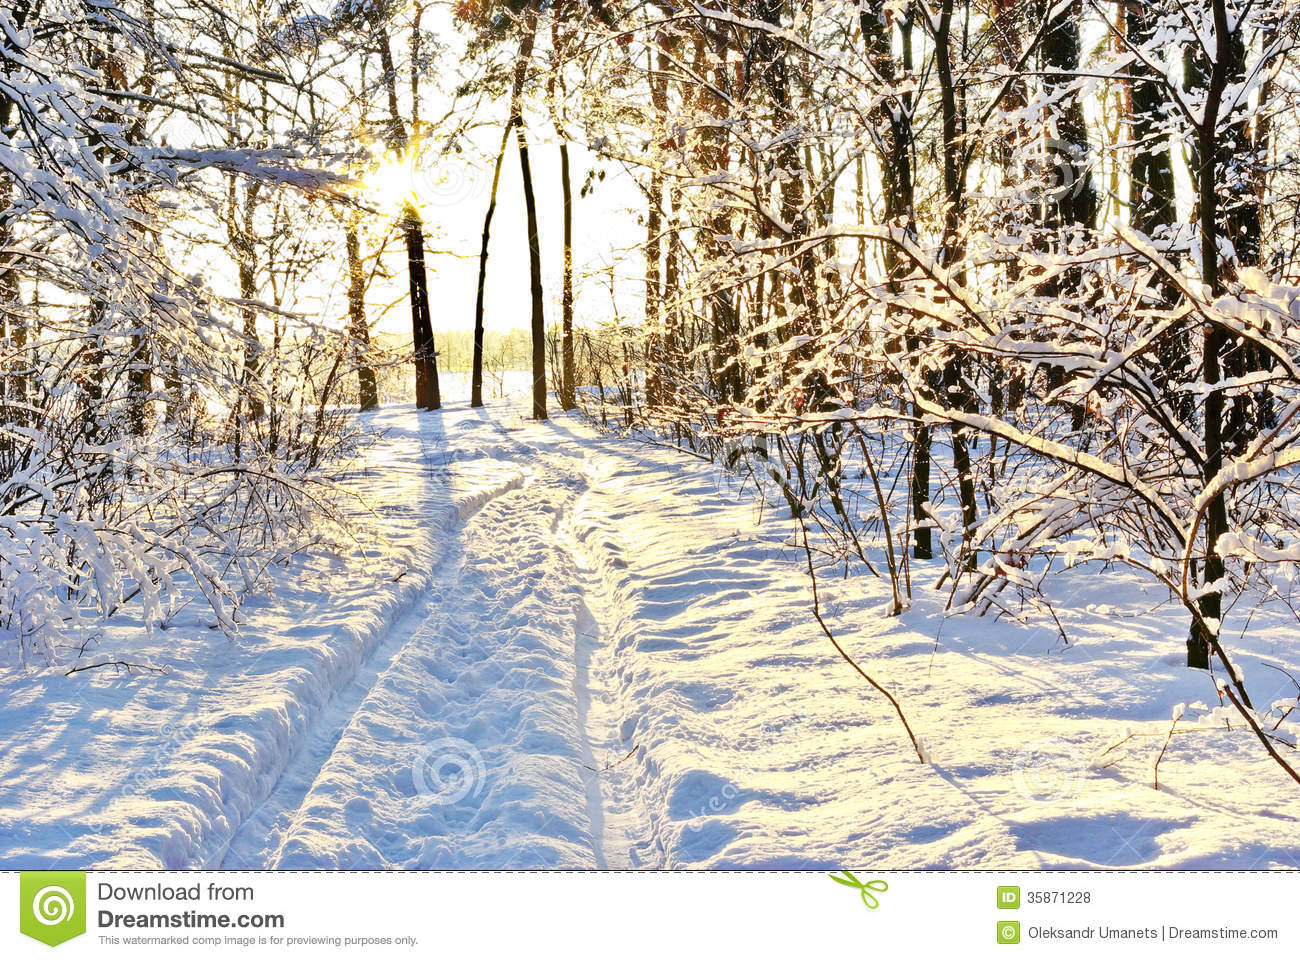 snowy forest white tree branches winter themed sunlight among the branches of trees in snowy winter 255